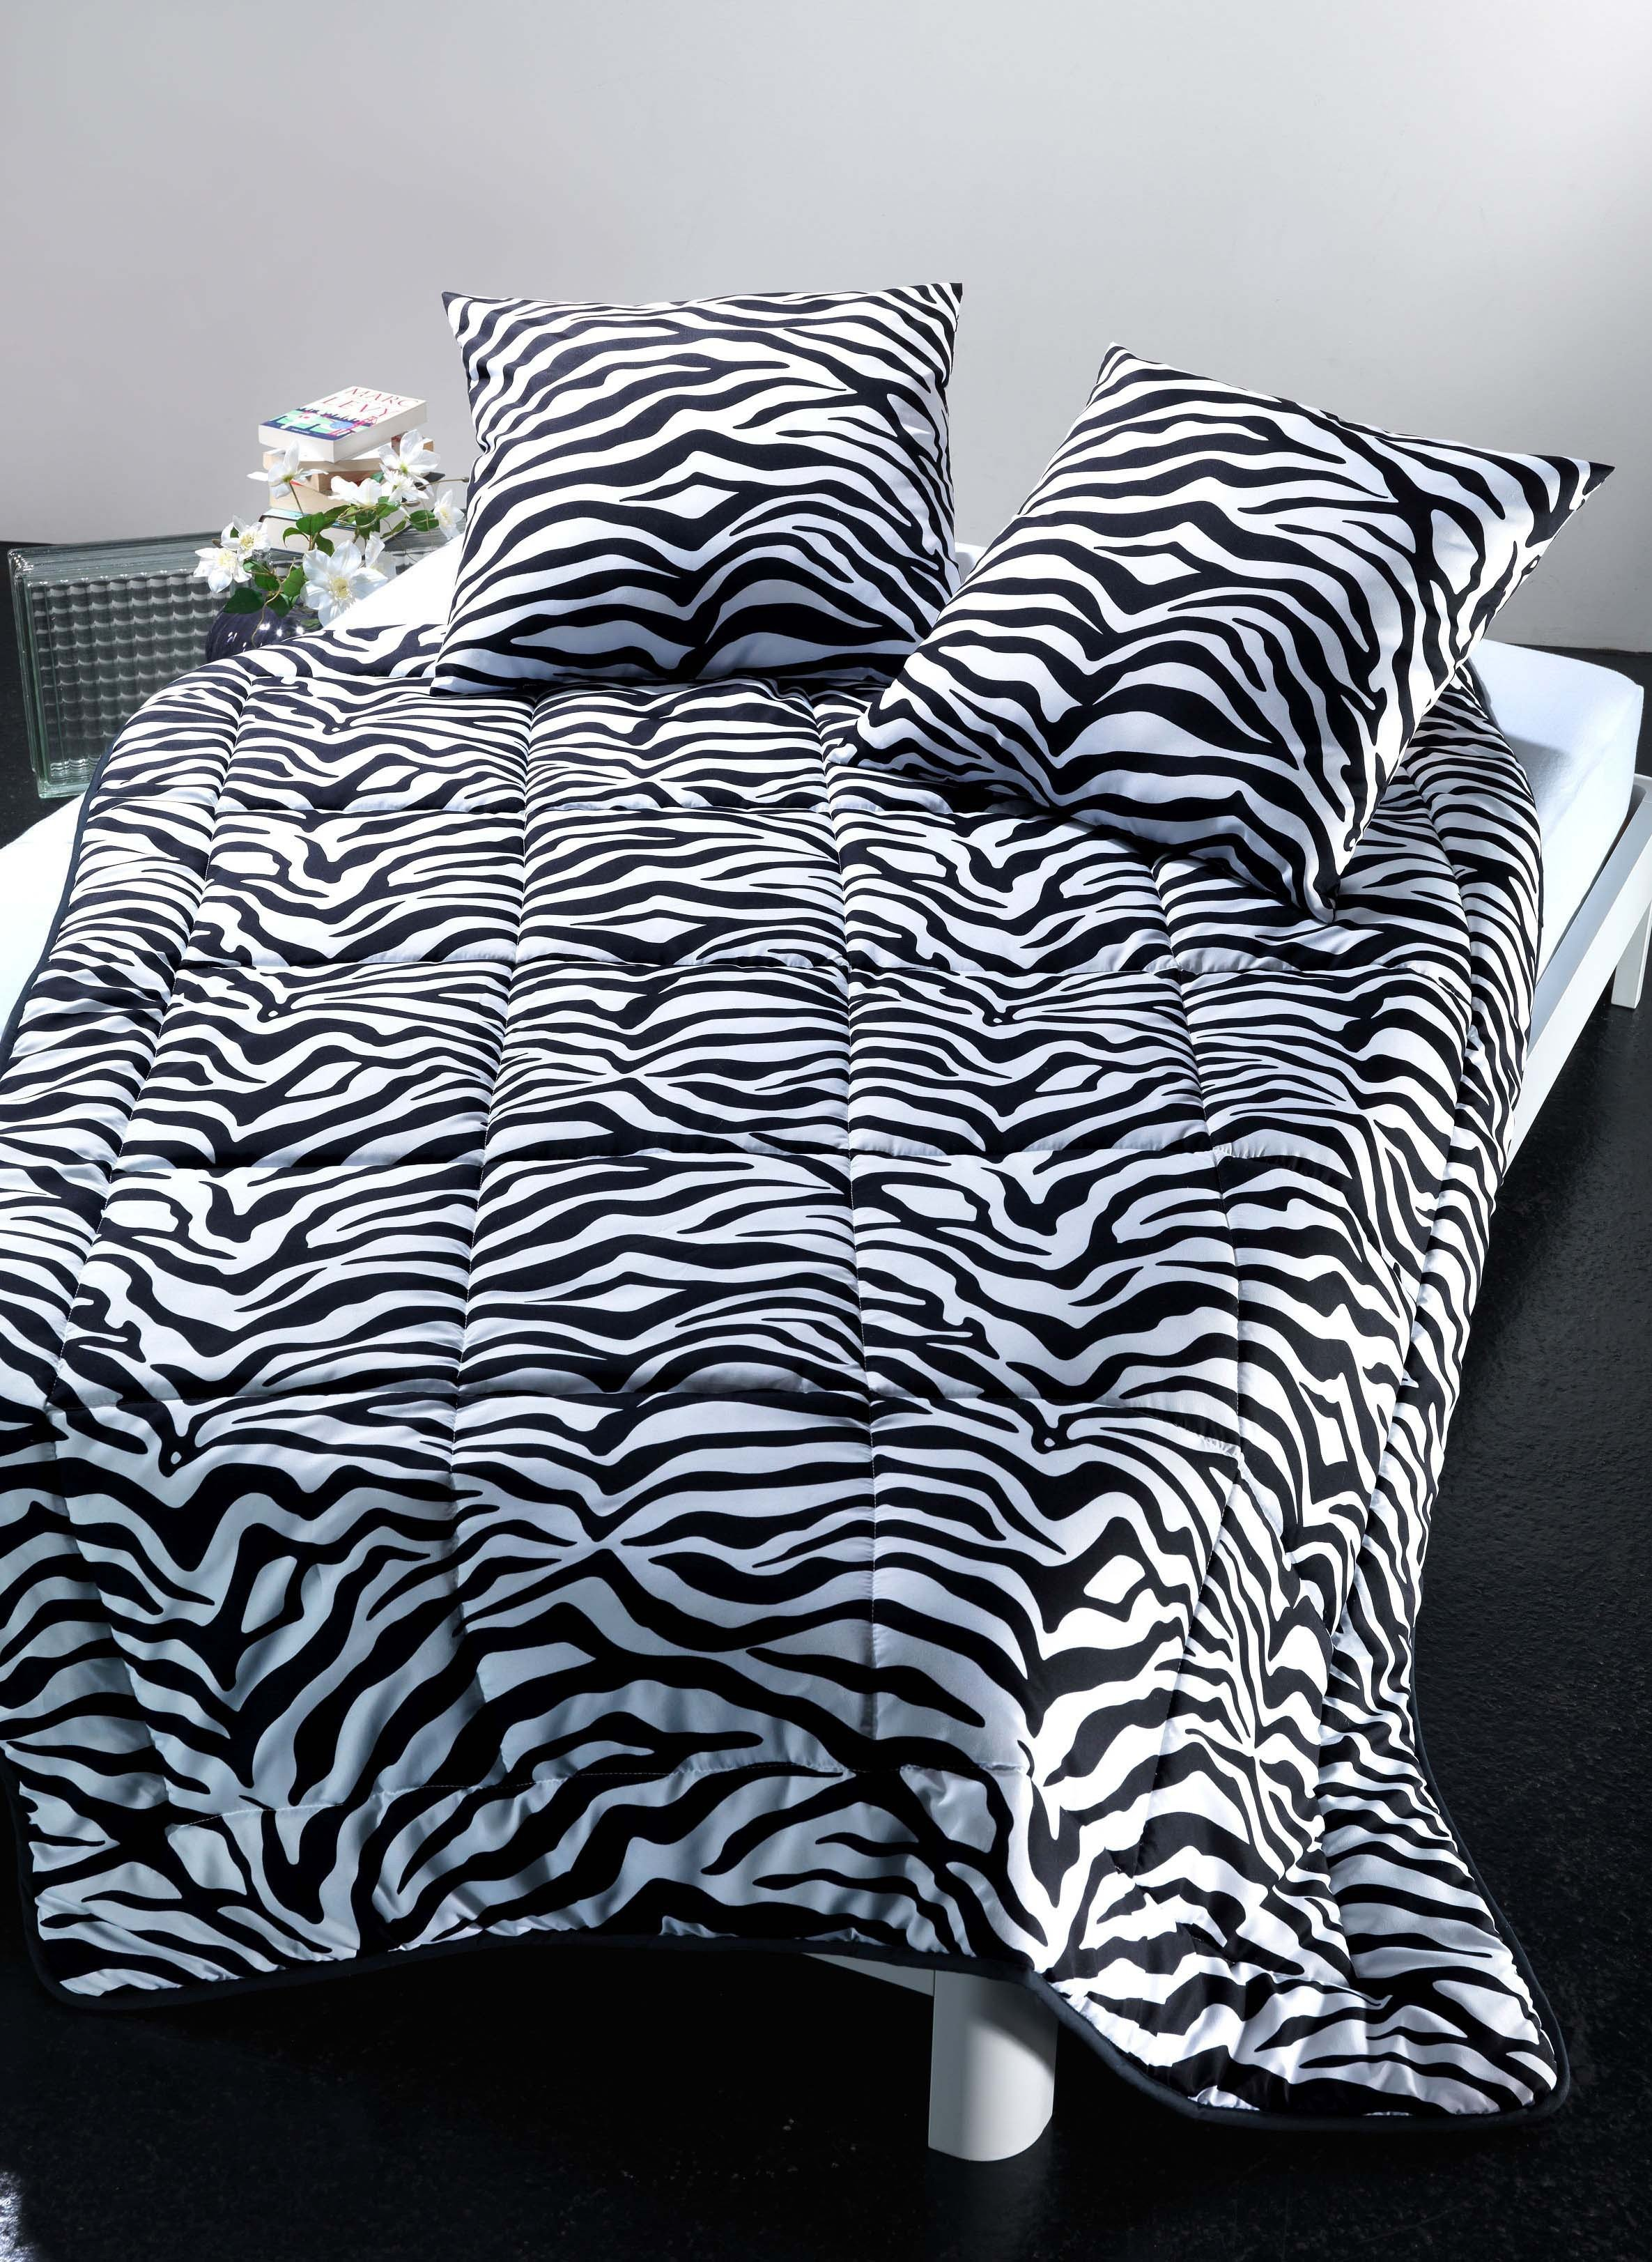 bett berwurf zebra. Black Bedroom Furniture Sets. Home Design Ideas